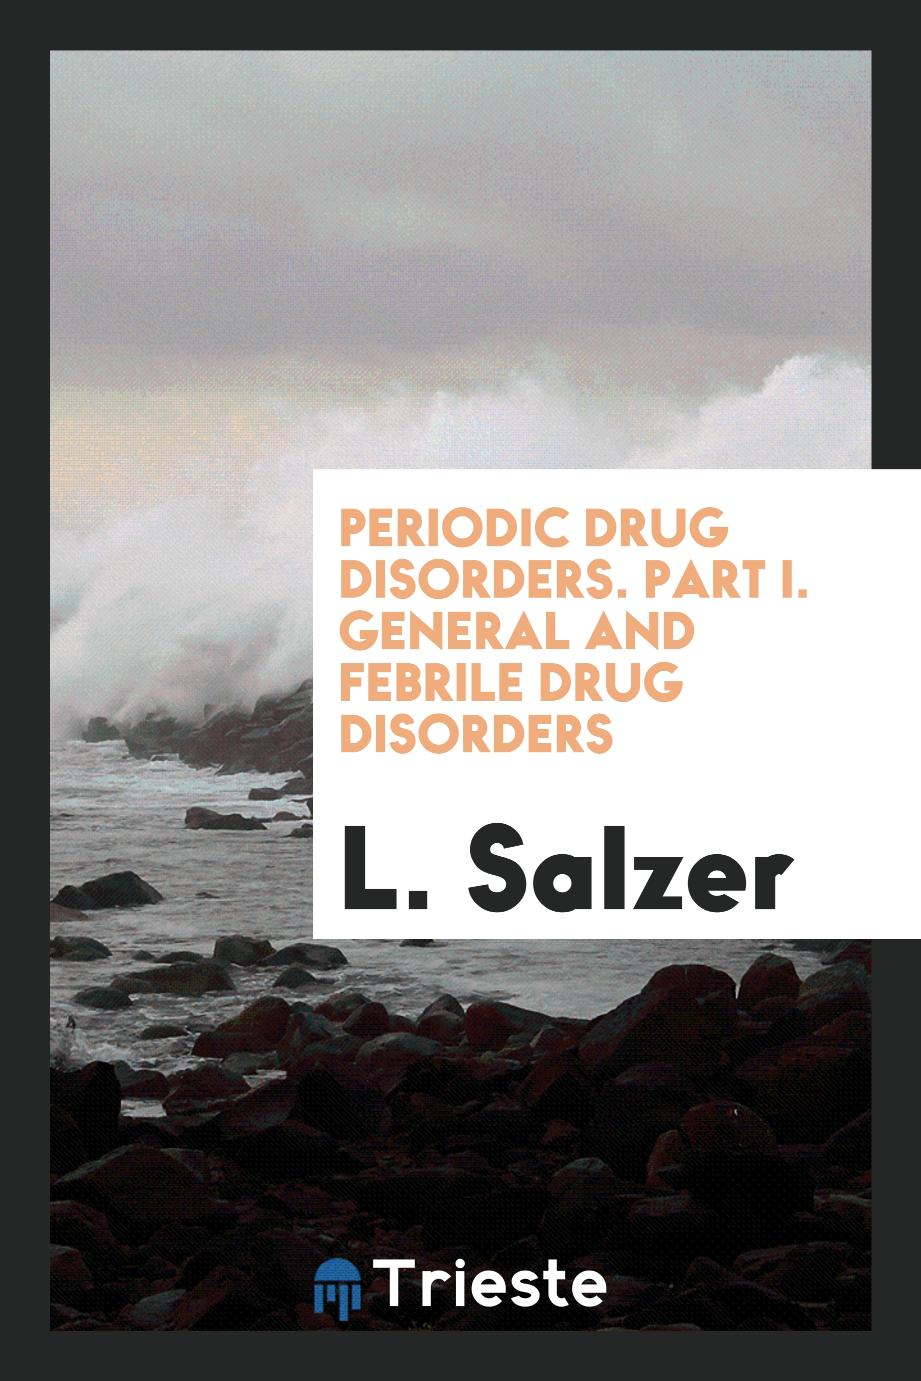 Periodic Drug Disorders. Part I. General and Febrile Drug Disorders